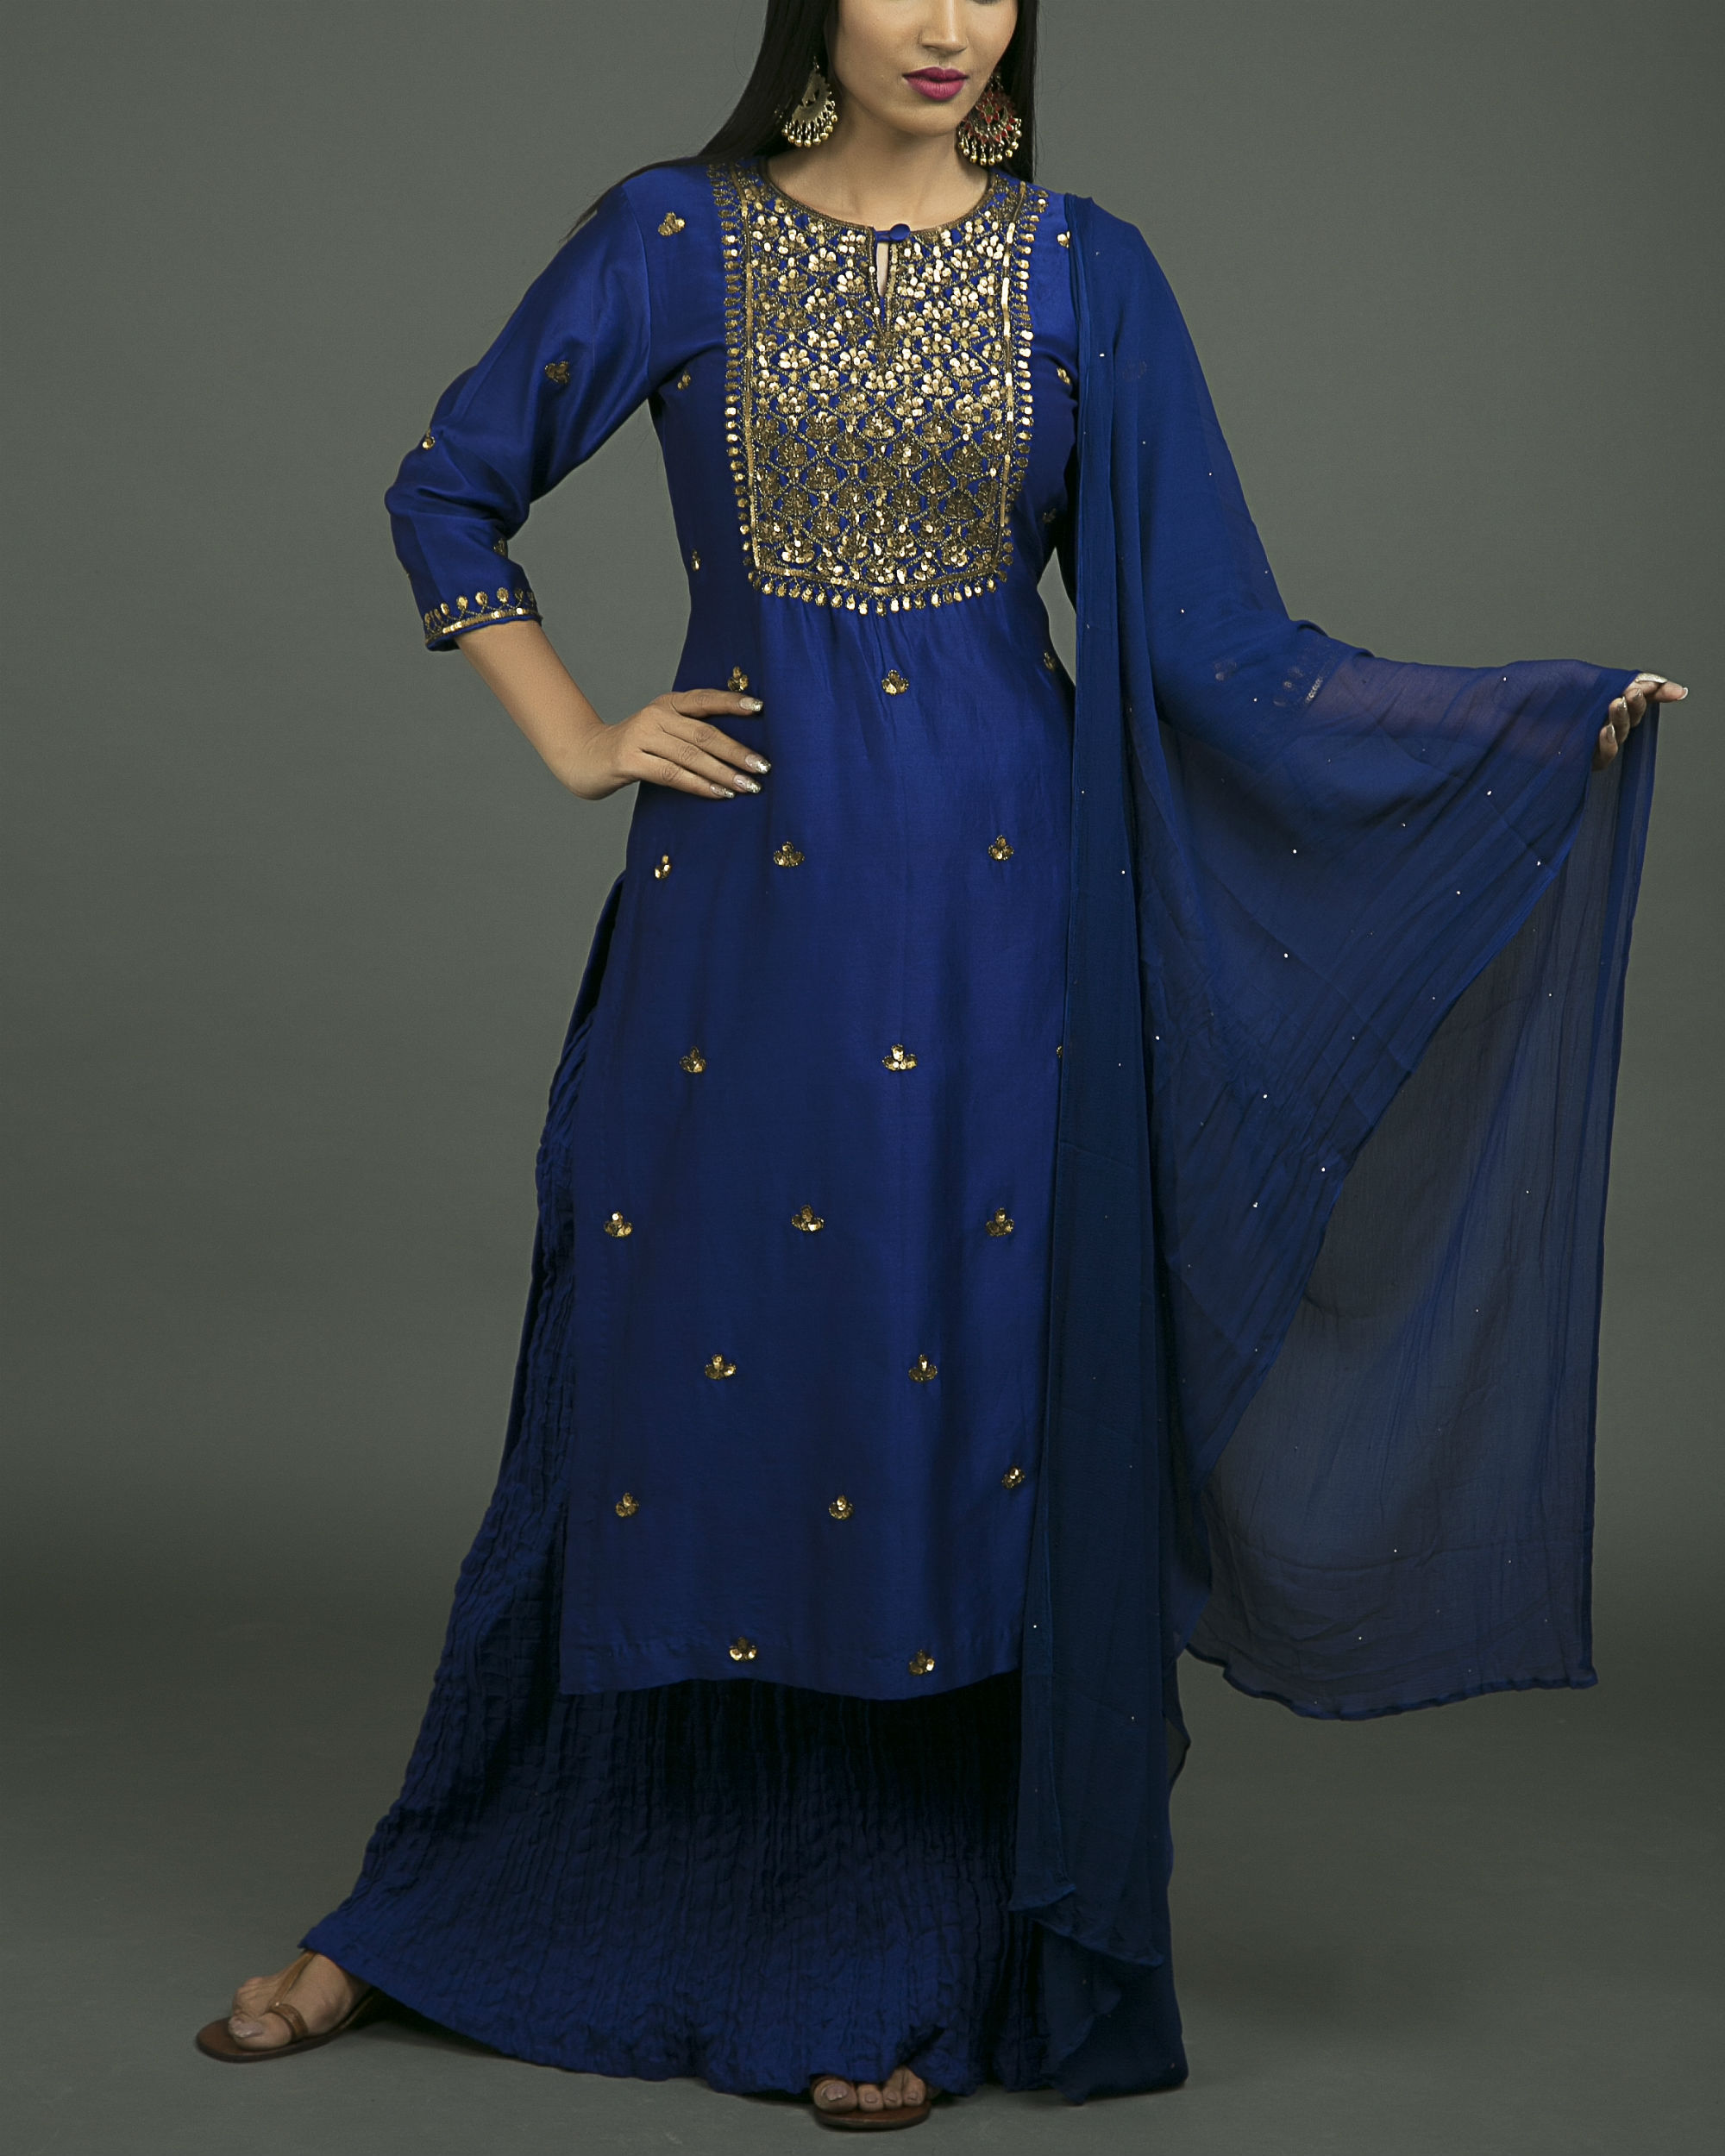 Neela aari embroidered kurta set with neela chiffon dupatta